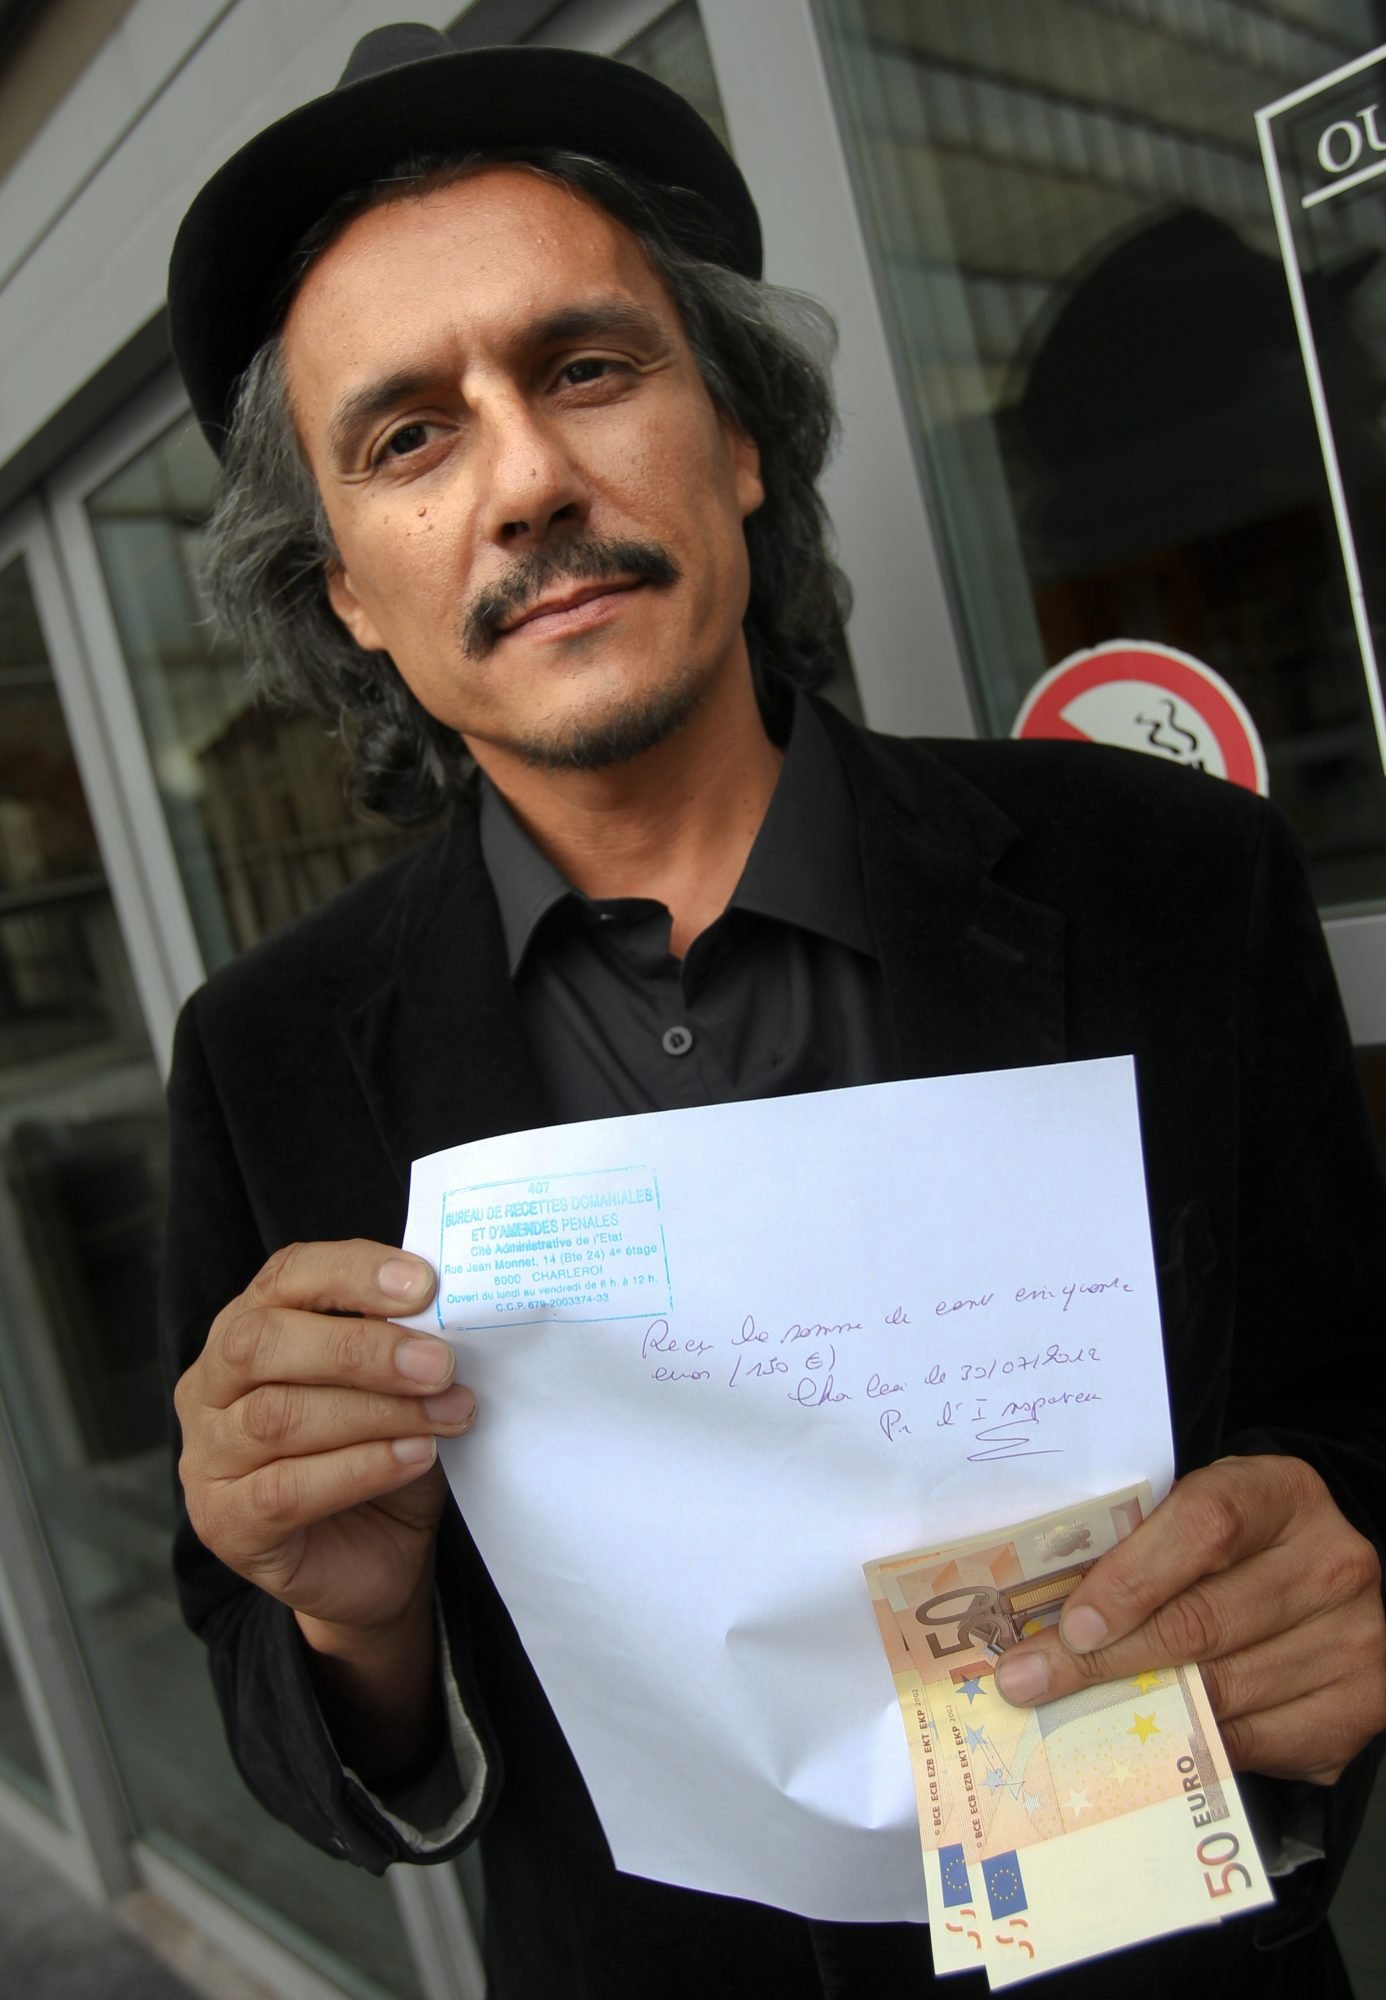 French businessman and 2007 presidential candidate Rachid Nekkaz poses with a fine payment receipt and bills as he walks out of a police station in Charleroi after paying a fine which was handed to a woman wearing a full-veil niqab, in Charleroi, on July 30, 2012. After the Belgium government approved a controversial 'anti-burqa' law similar to the one in France, Nekkaz announced he would pay any fine for women who want to wear the full islamic veil 'burqa' or 'niqab' in Belgium or France. AFP PHOTO / BELGA / VIRGINIE LEFOUR ***BELGIUM OUT*** (Photo credit should read VIRGINIE LEFOUR/AFP/GettyImages)